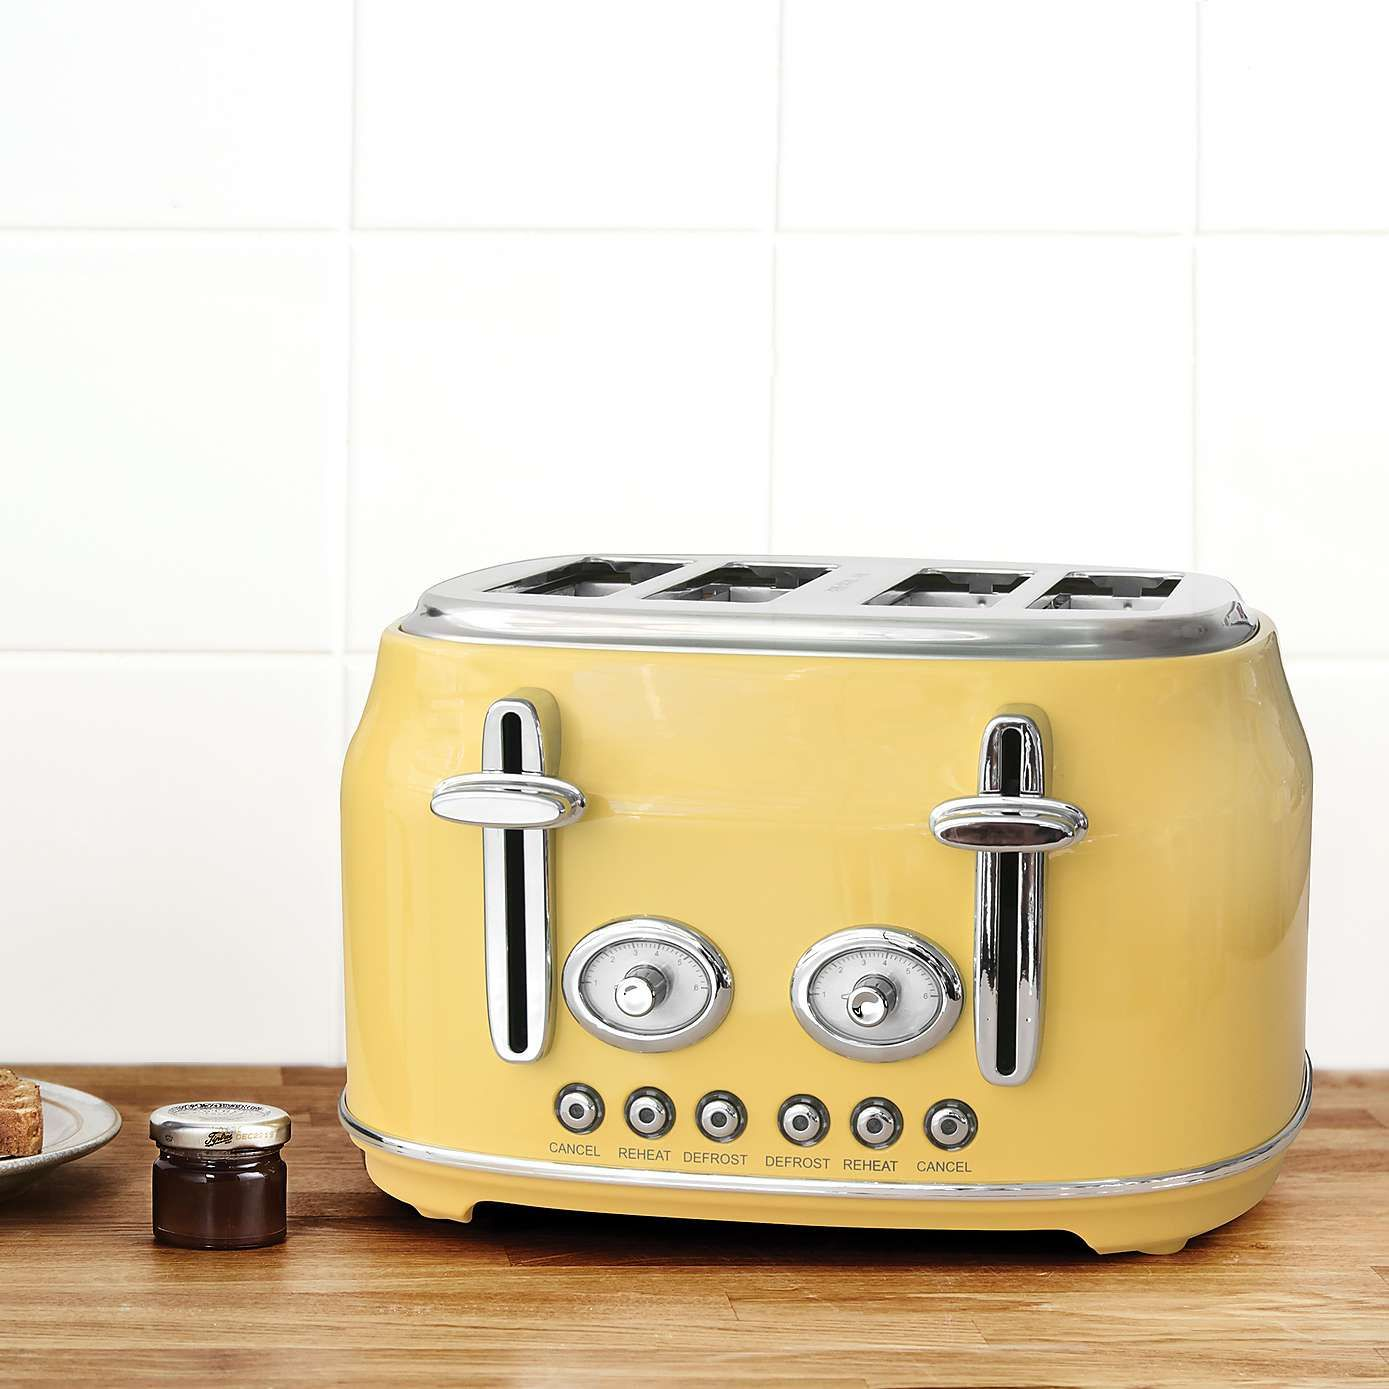 Retro Yellow 4 Slice Toaster Retro Kitchen Appliances Retro Toaster Yellow Toaster